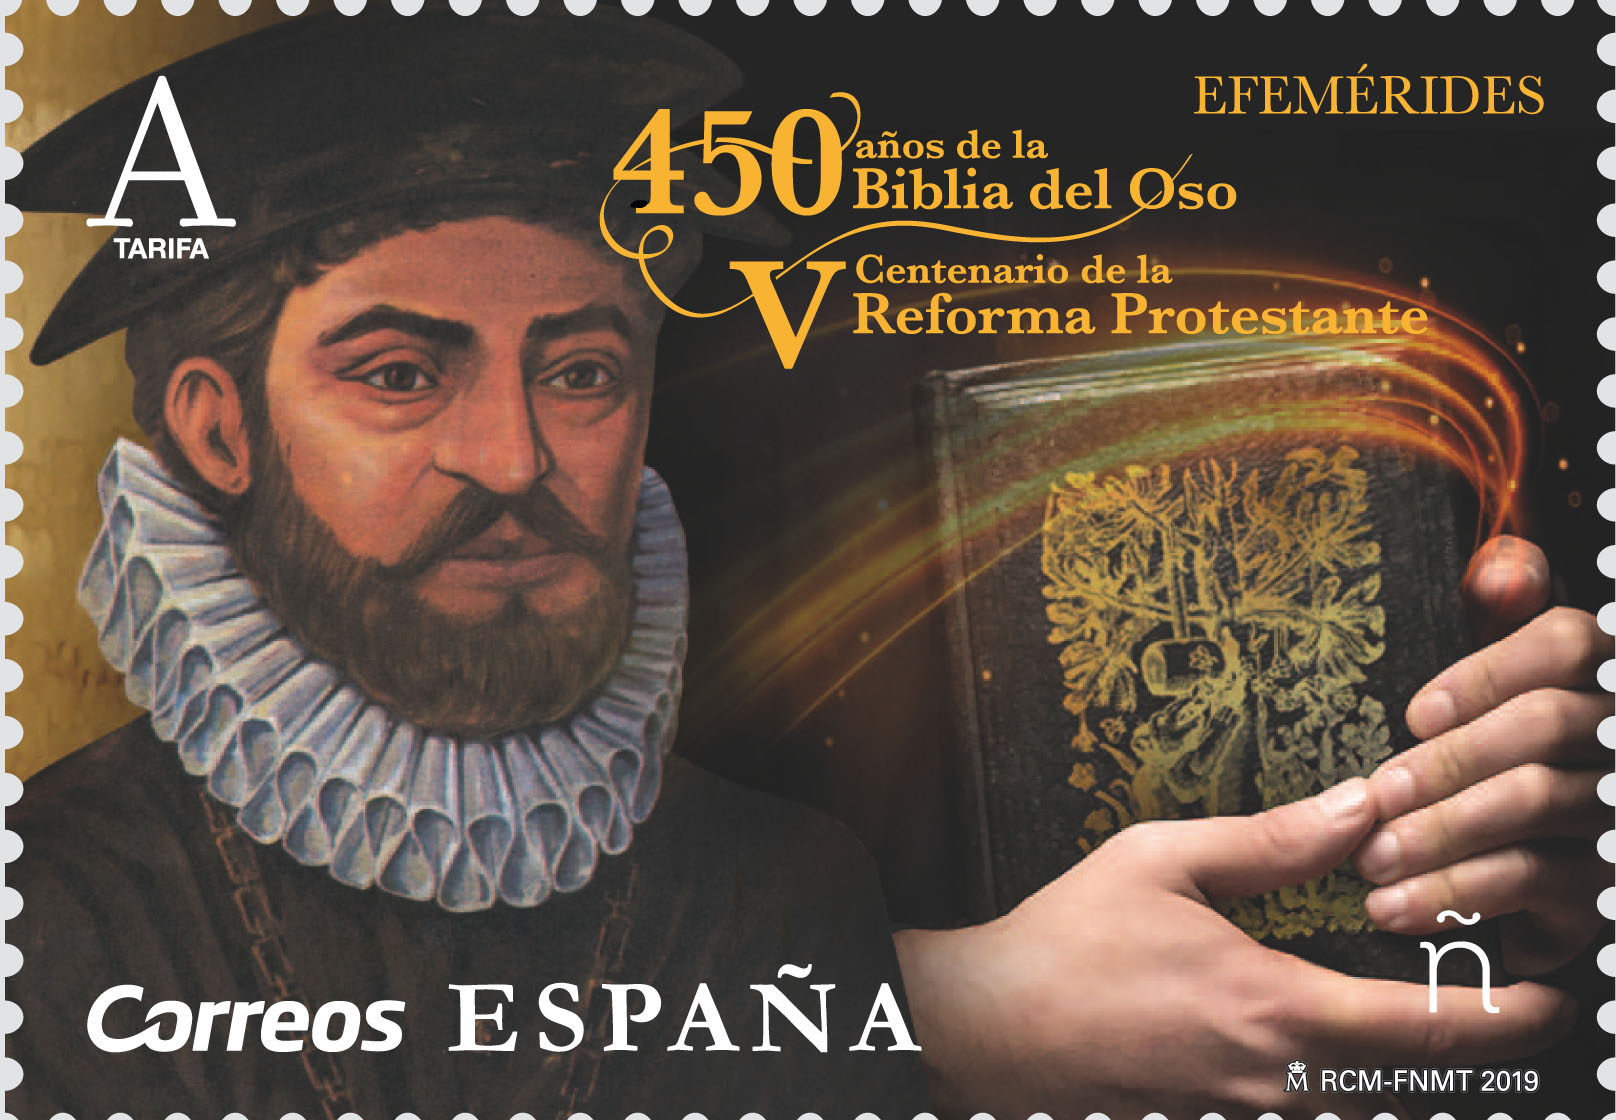 Spain - 450th Anniversary of the Bear Bible and Fifth Century of the Protestant Reformation (January 14, 2019)